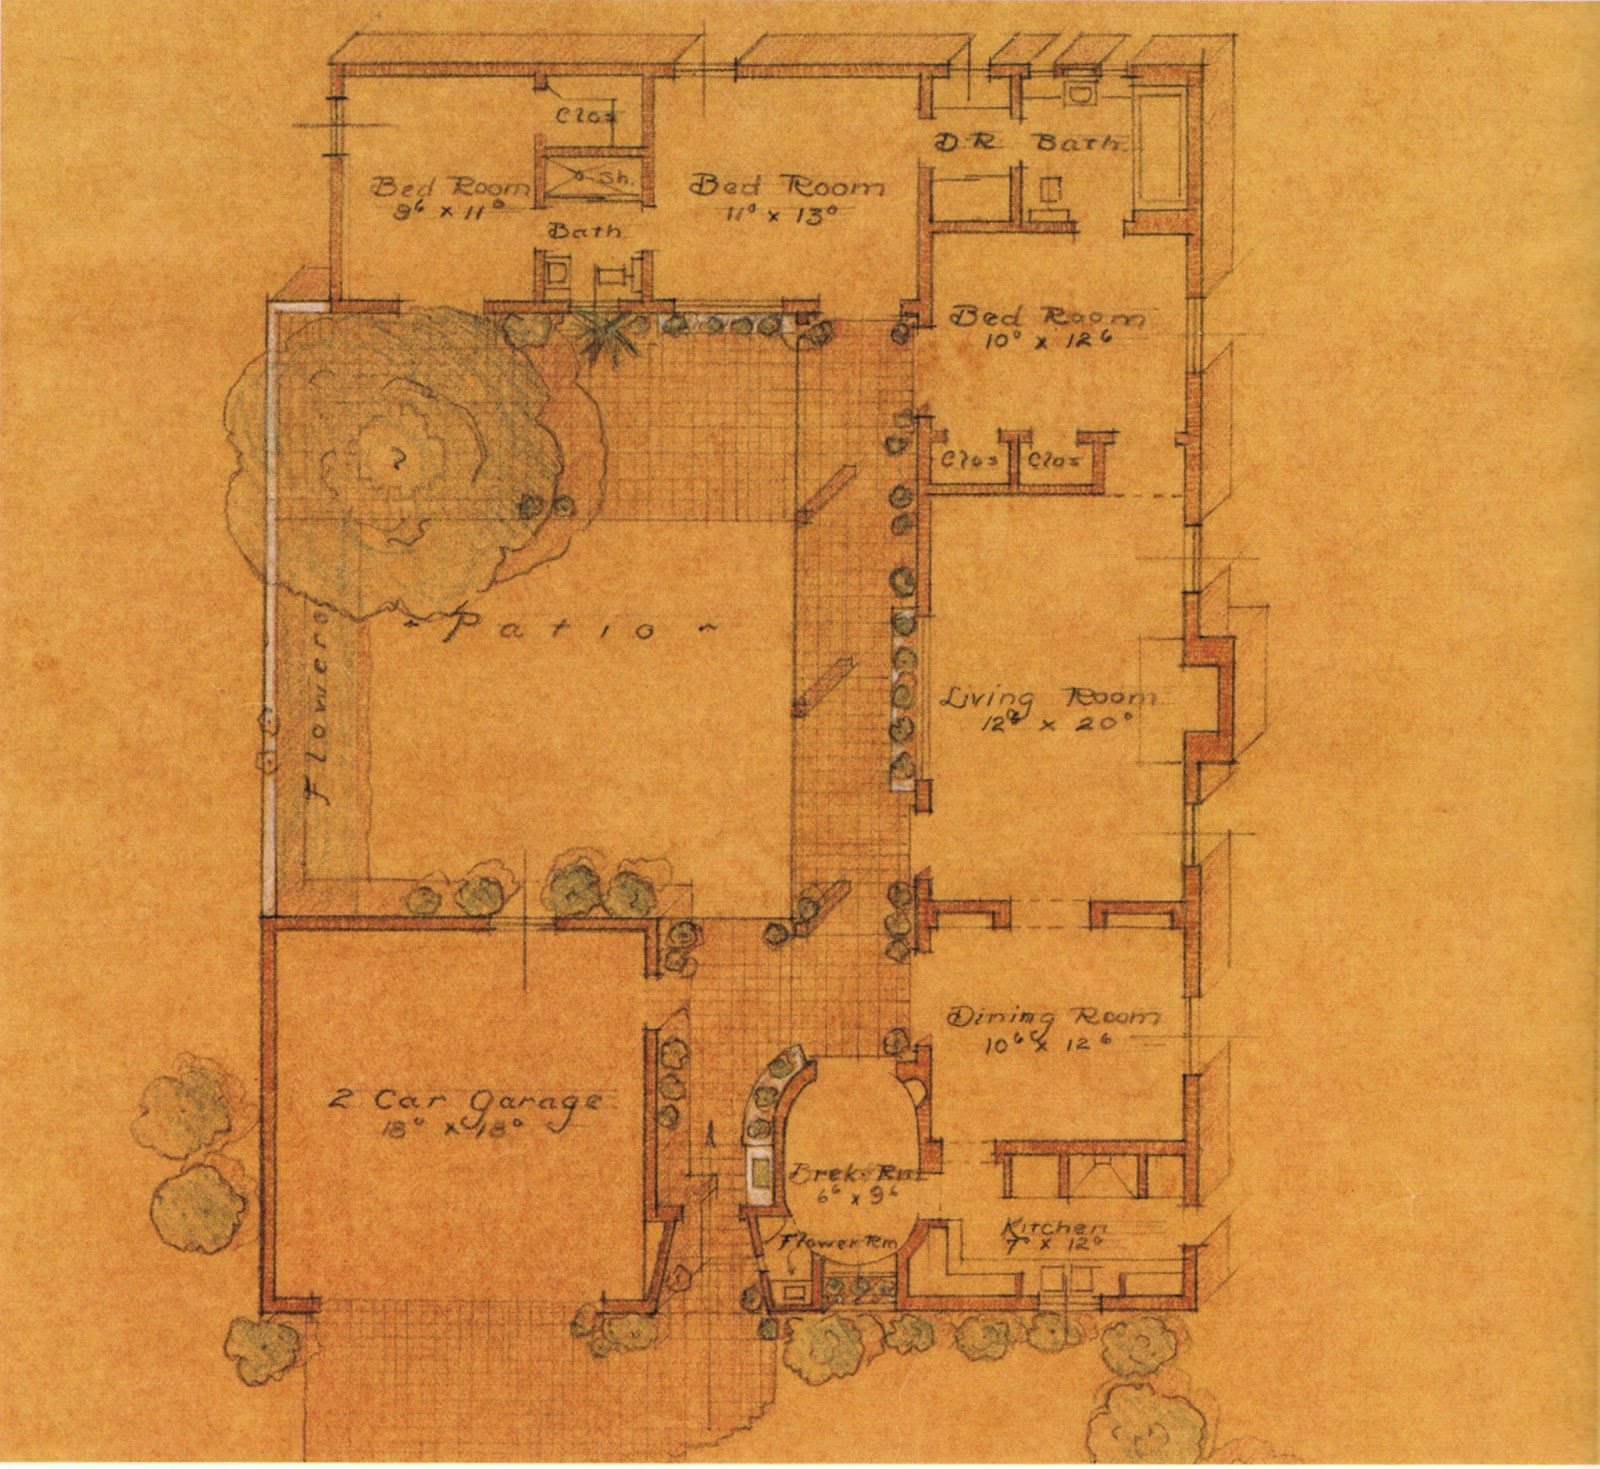 Discovering an 39 unknown 39 cliff may home in san diego 03 17 13 Cliff may house plans